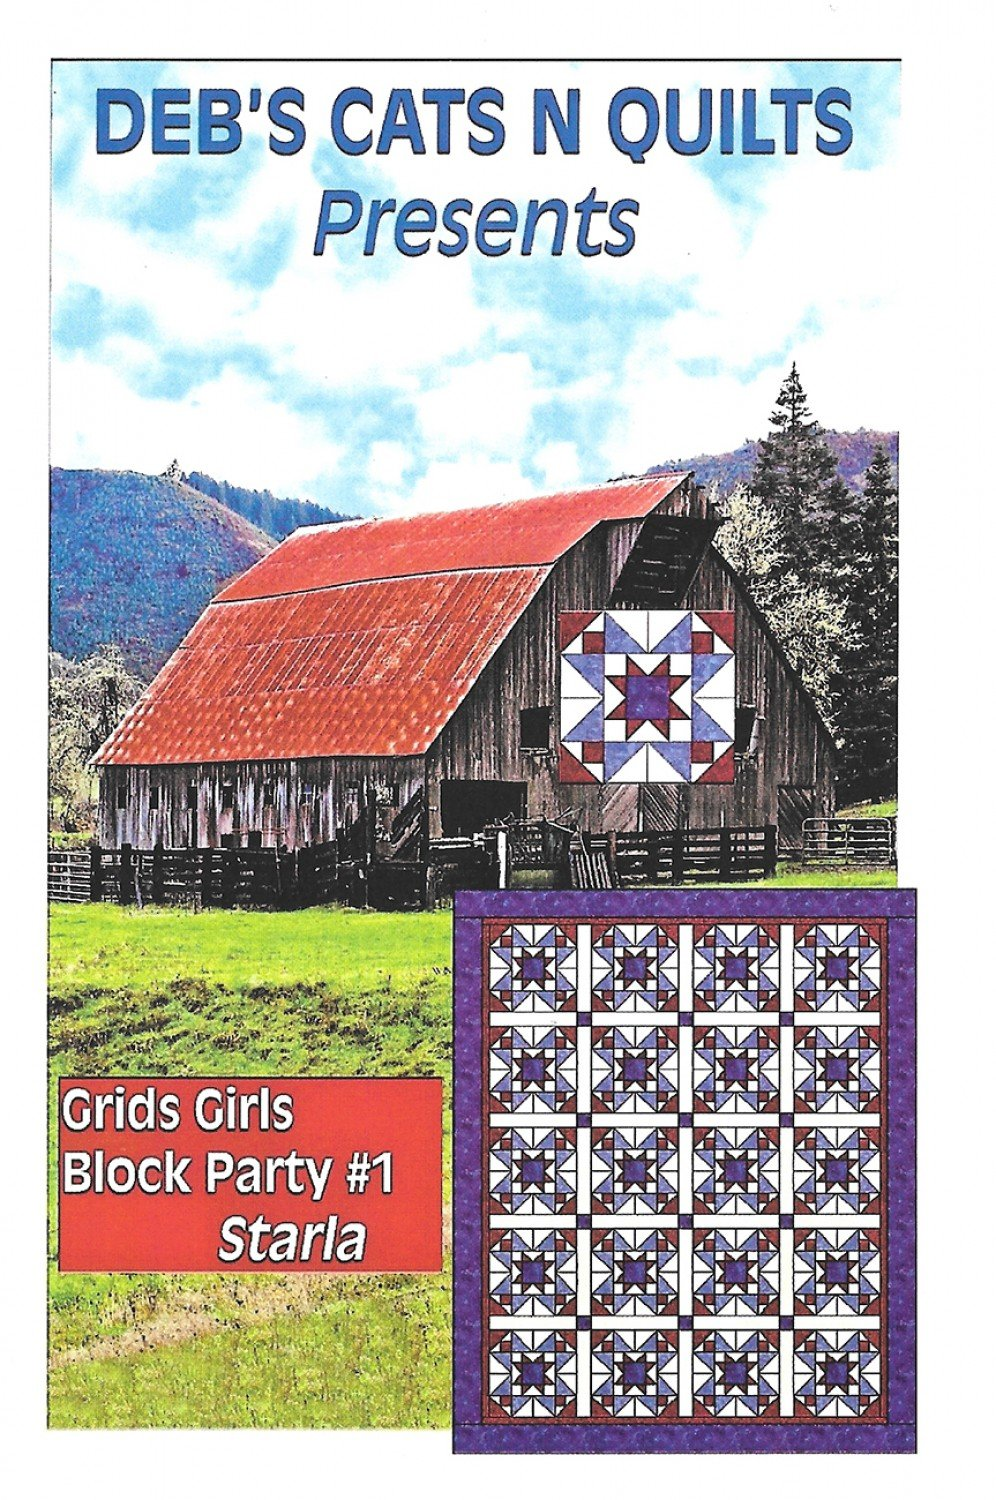 Grids Girls Block Party